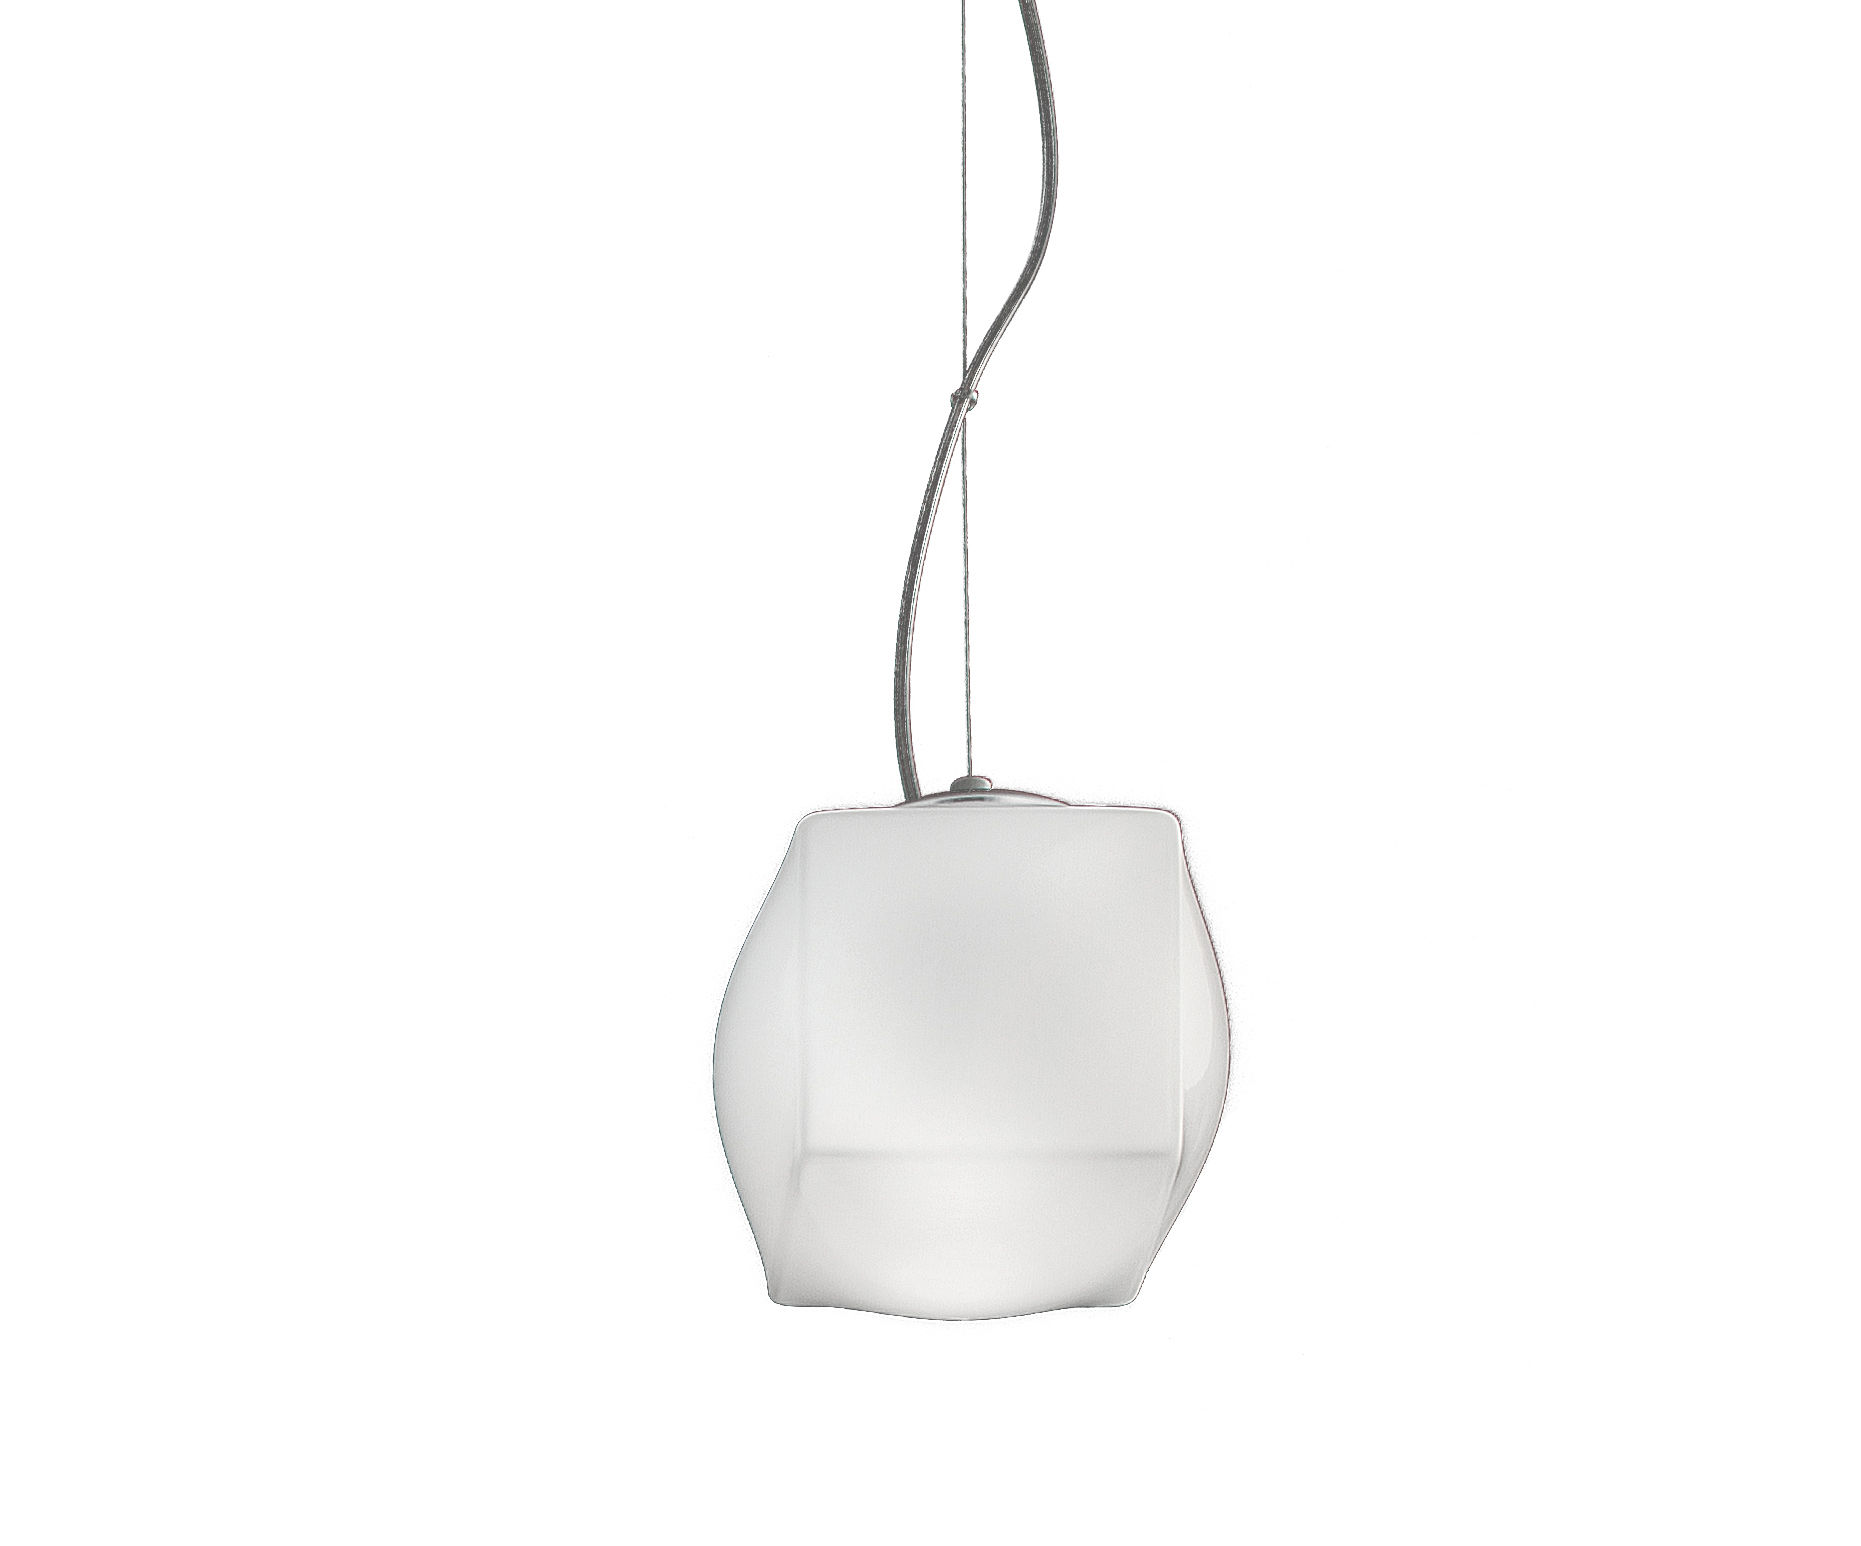 Lighting - Pendant Lighting - Macondo Small Pendant - Ø 15 cm by Nemo - Ø 15 cm / White - Chromed metal, Mouth blown glass